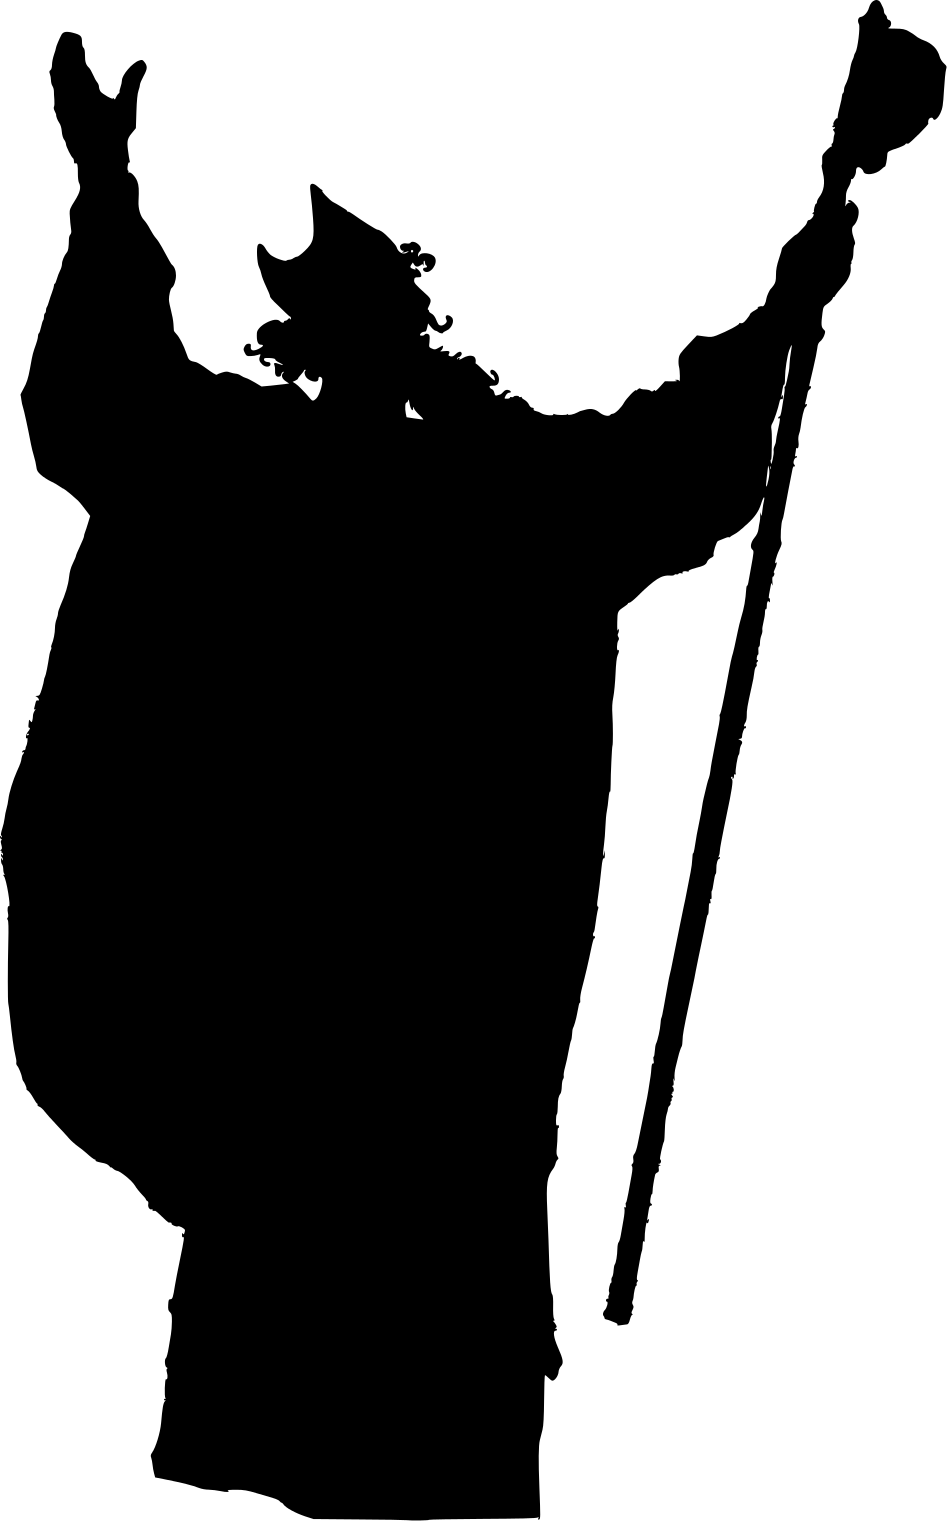 Clipart - Wizard Silhouette